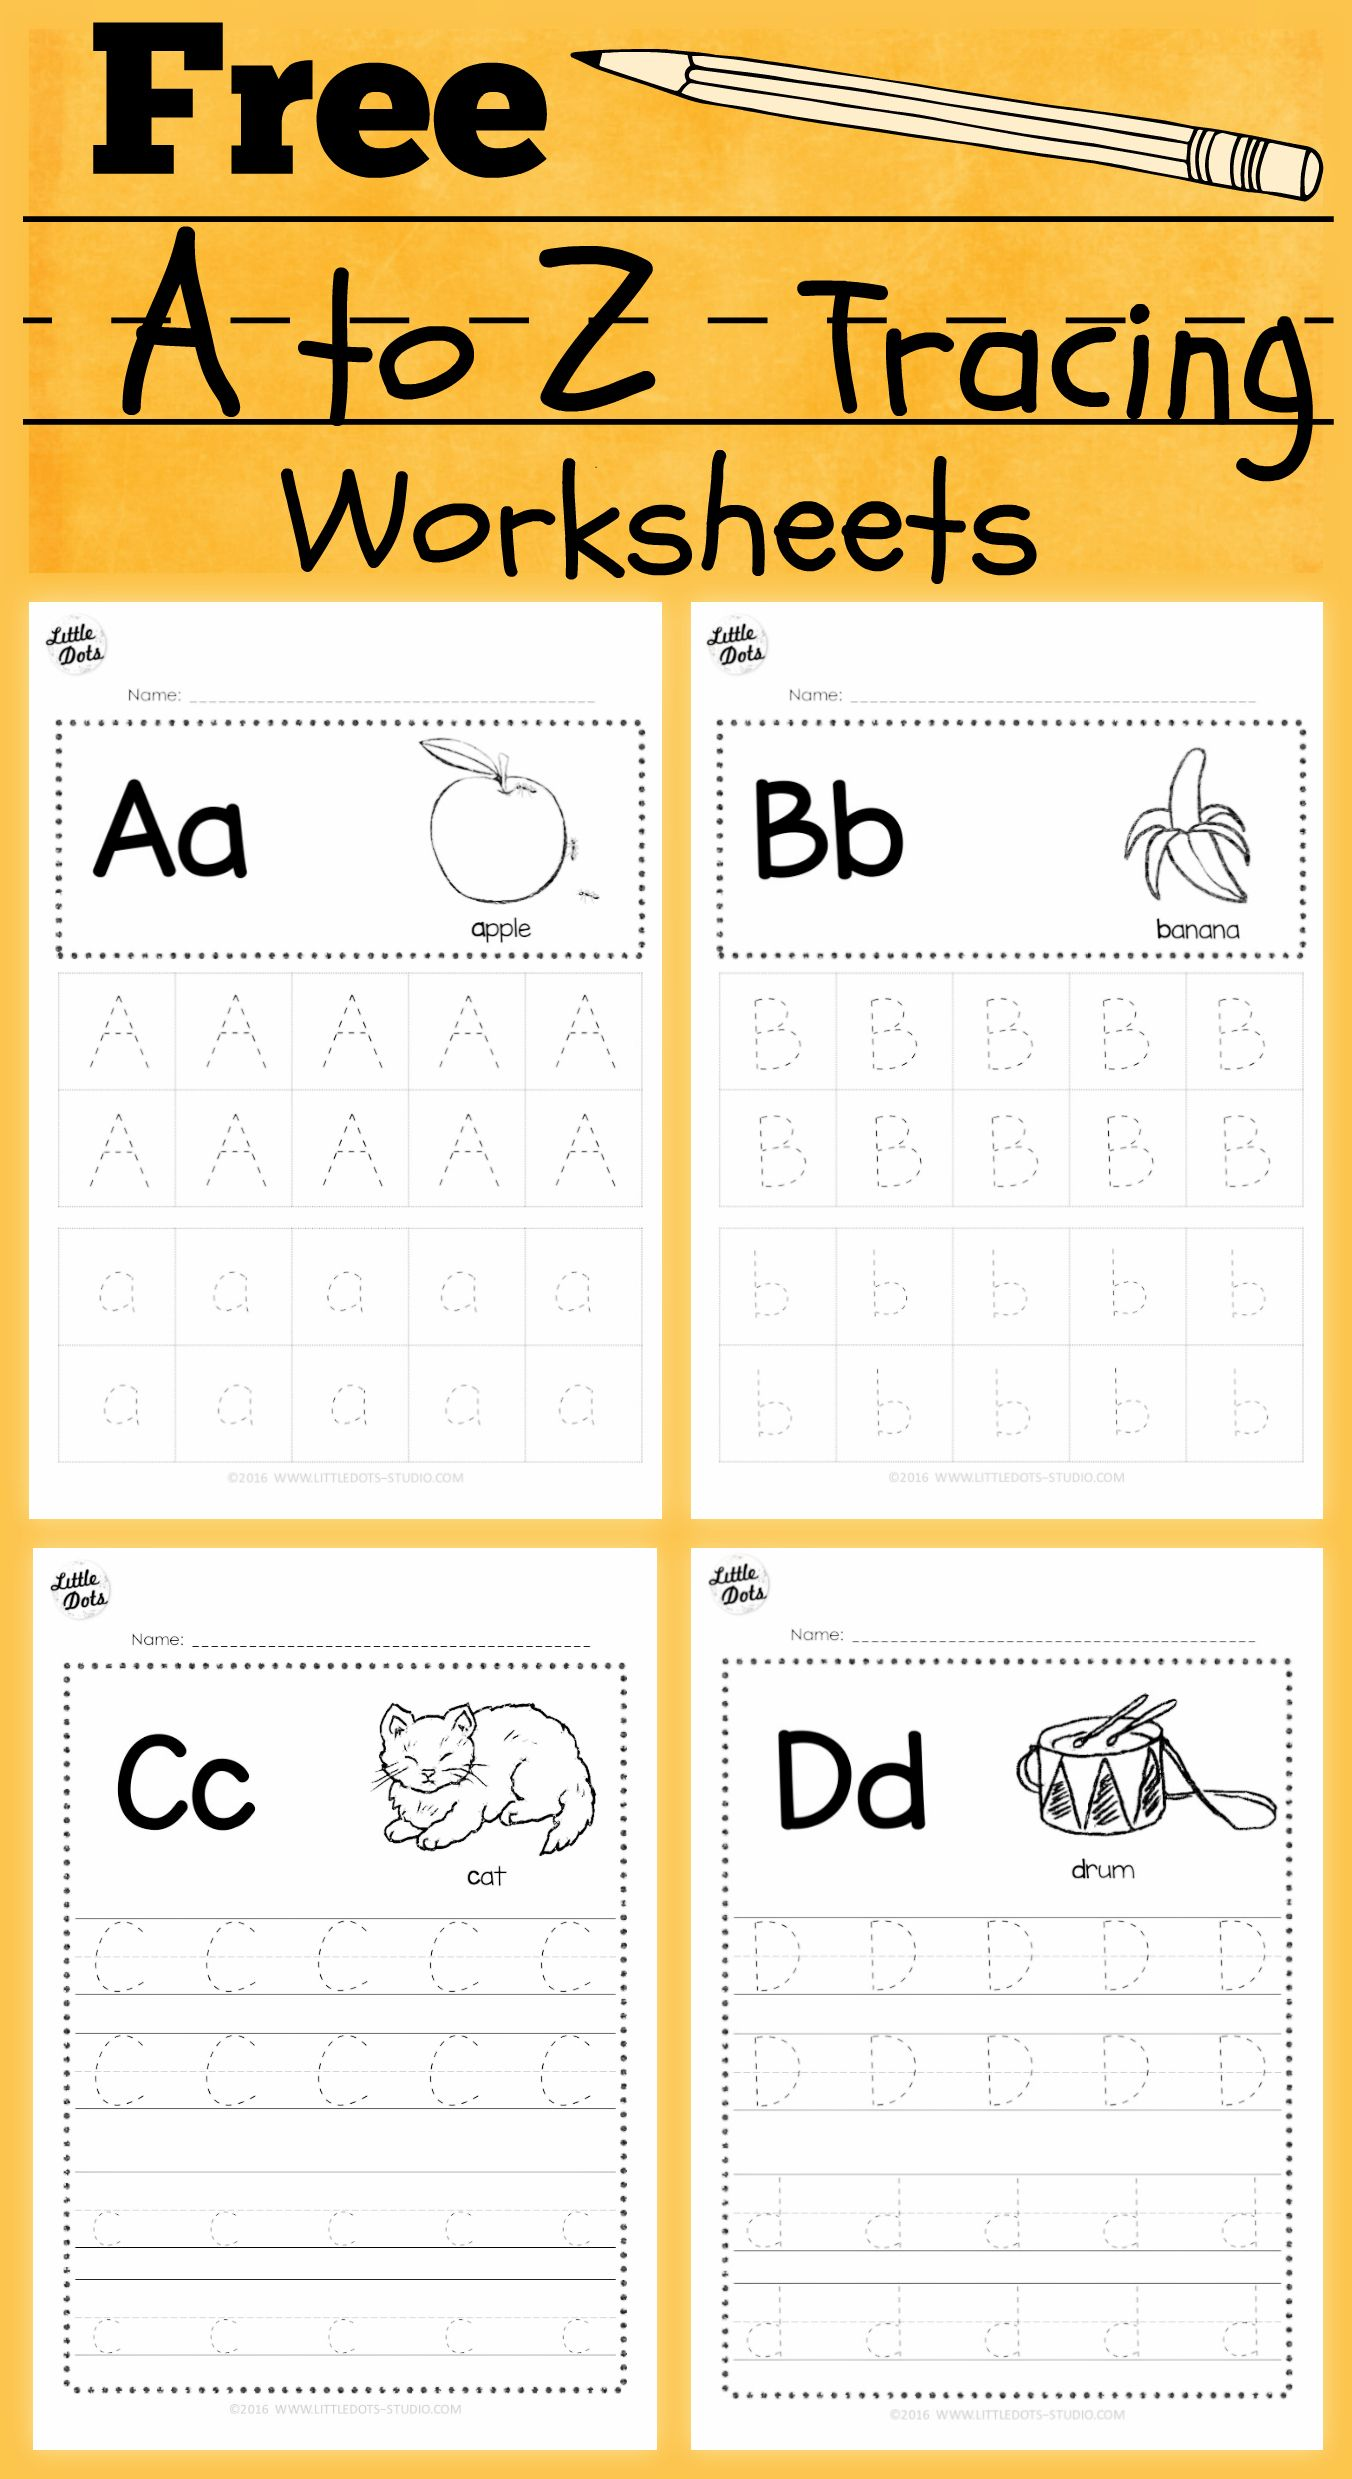 Download free alphabet tracing worksheets for letter a to z suitable for preschool pre k or kindergarten class There are two layouts available tracing with lines or free form tracing with boxes Visit us at for more preschool activities